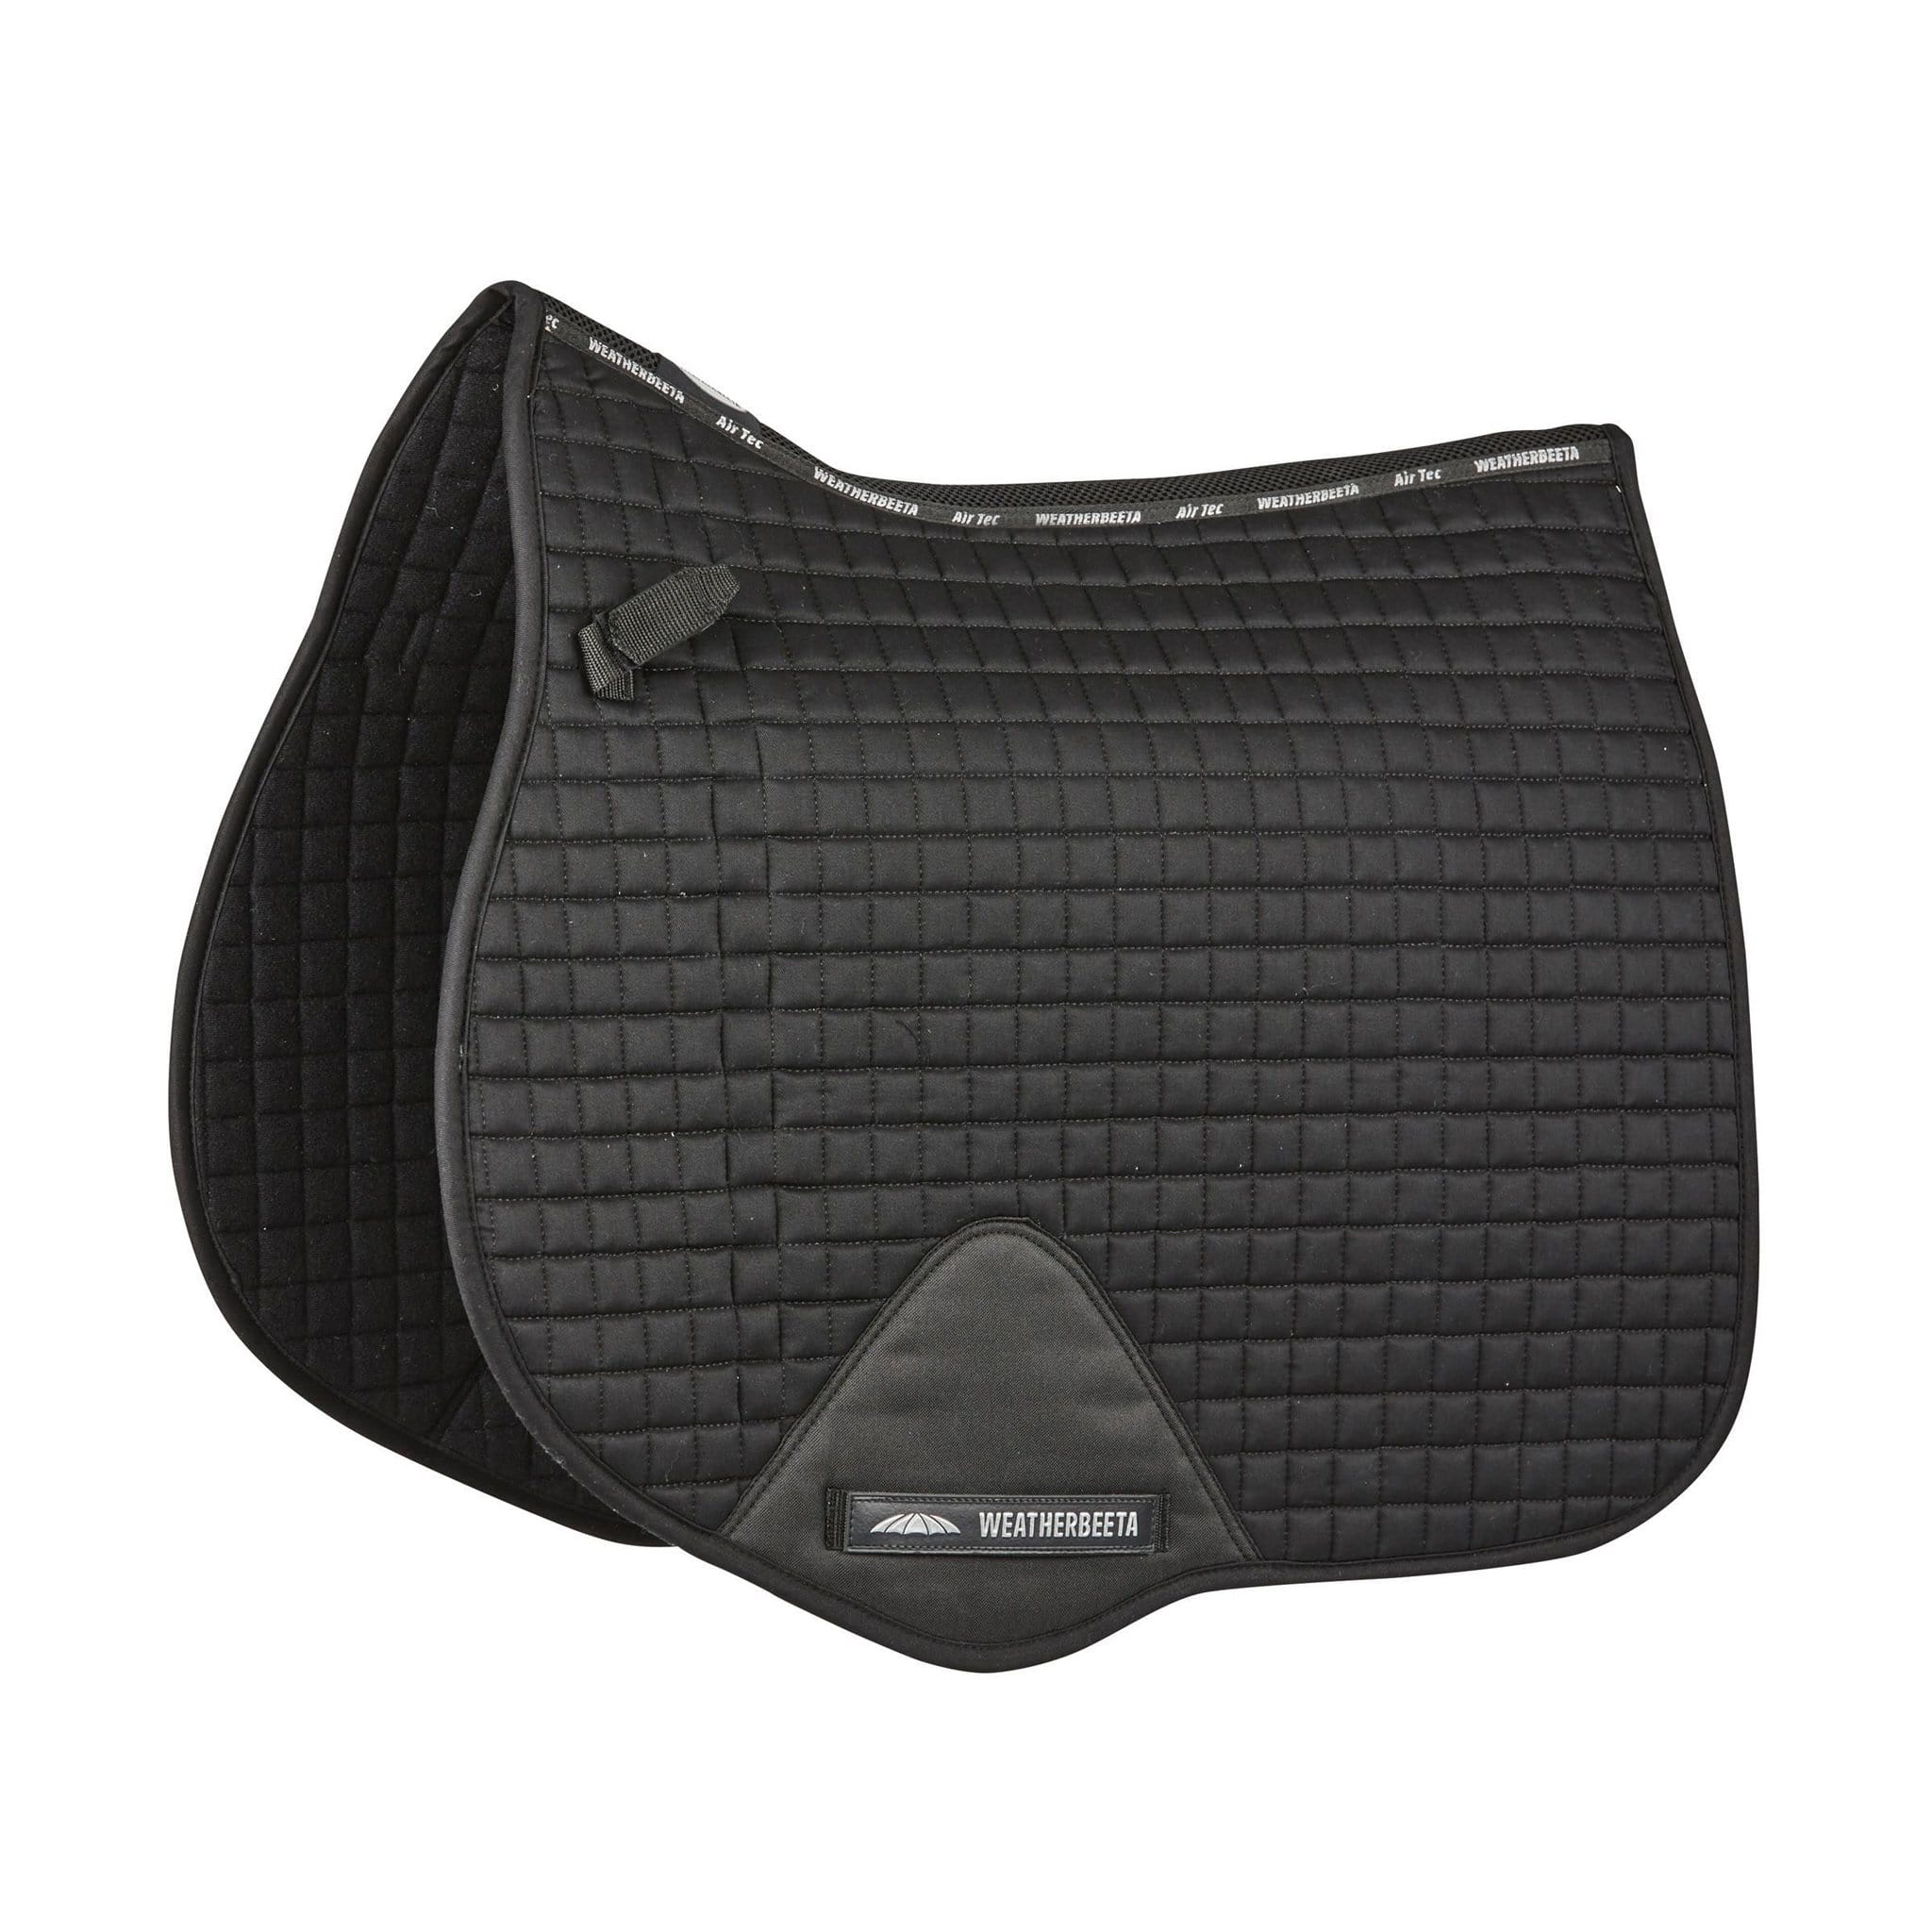 WeatherBeeta Prime GP Saddle Pad in Black 815051